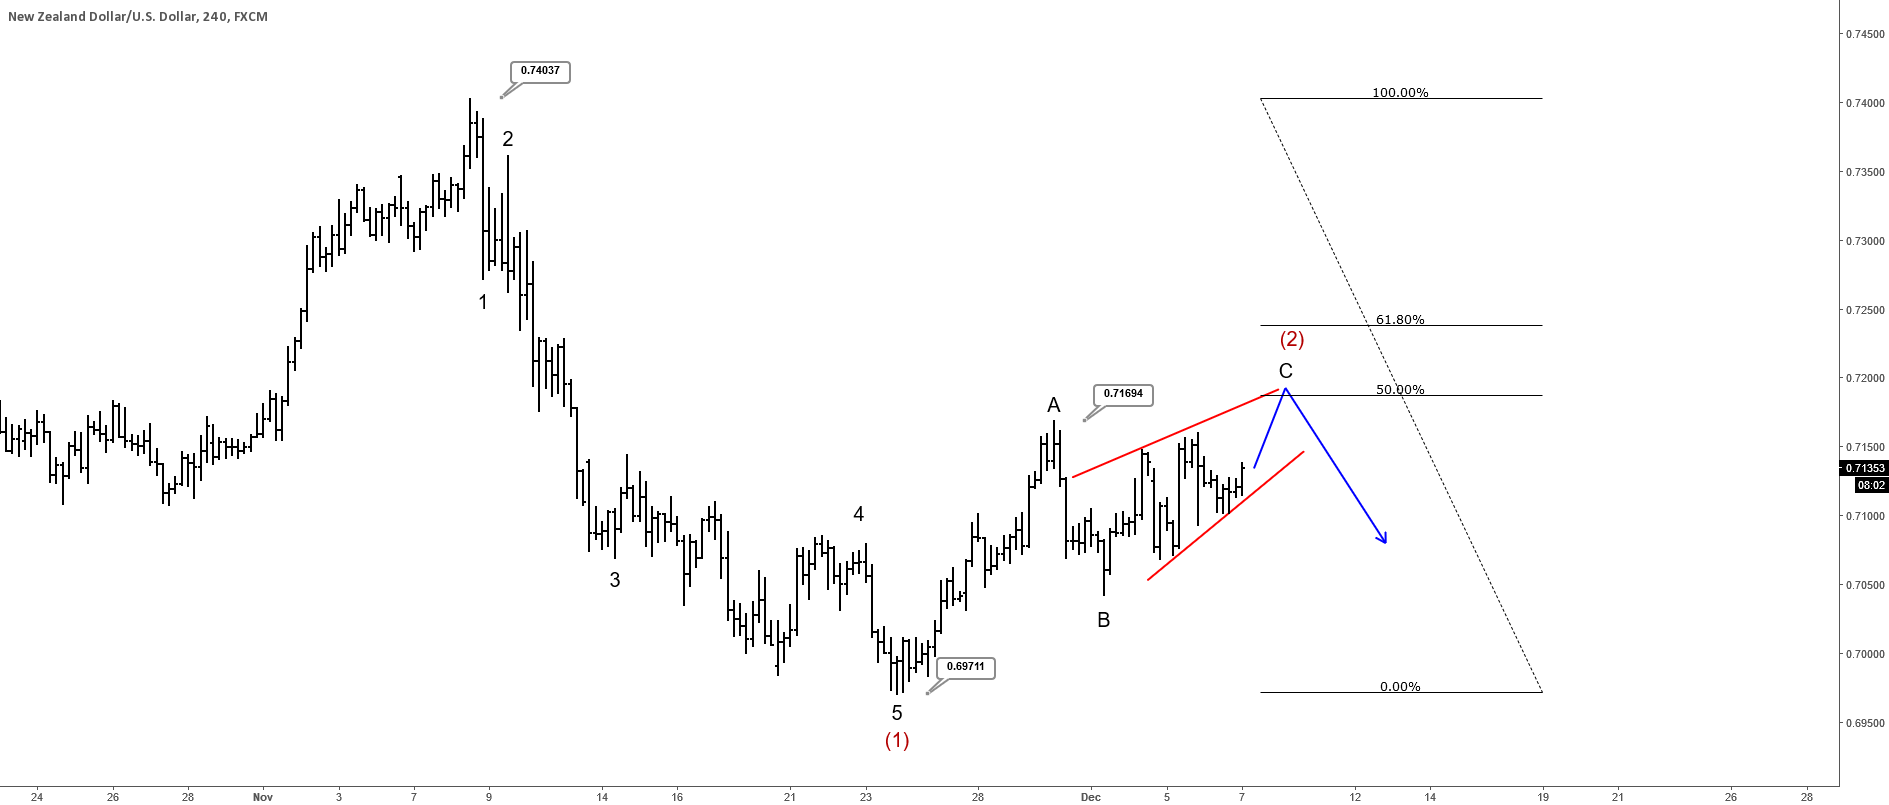 NZDUSD May See More Weakness, But After Temporary Correction